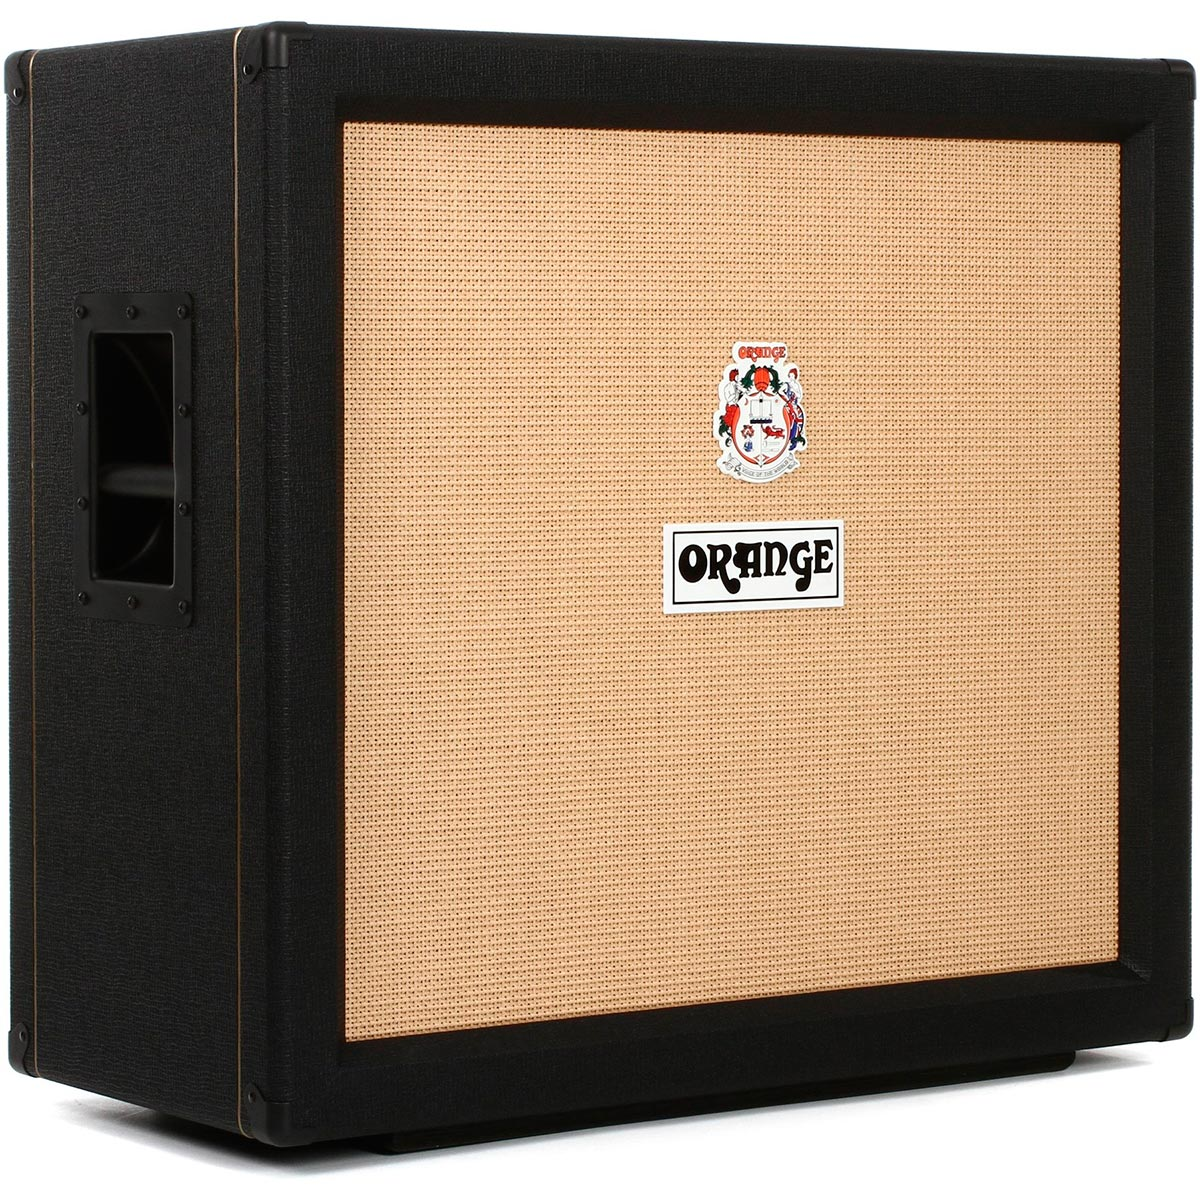 Orange PPC412 Negro - Bafle 4x12 guitarra eléctrica